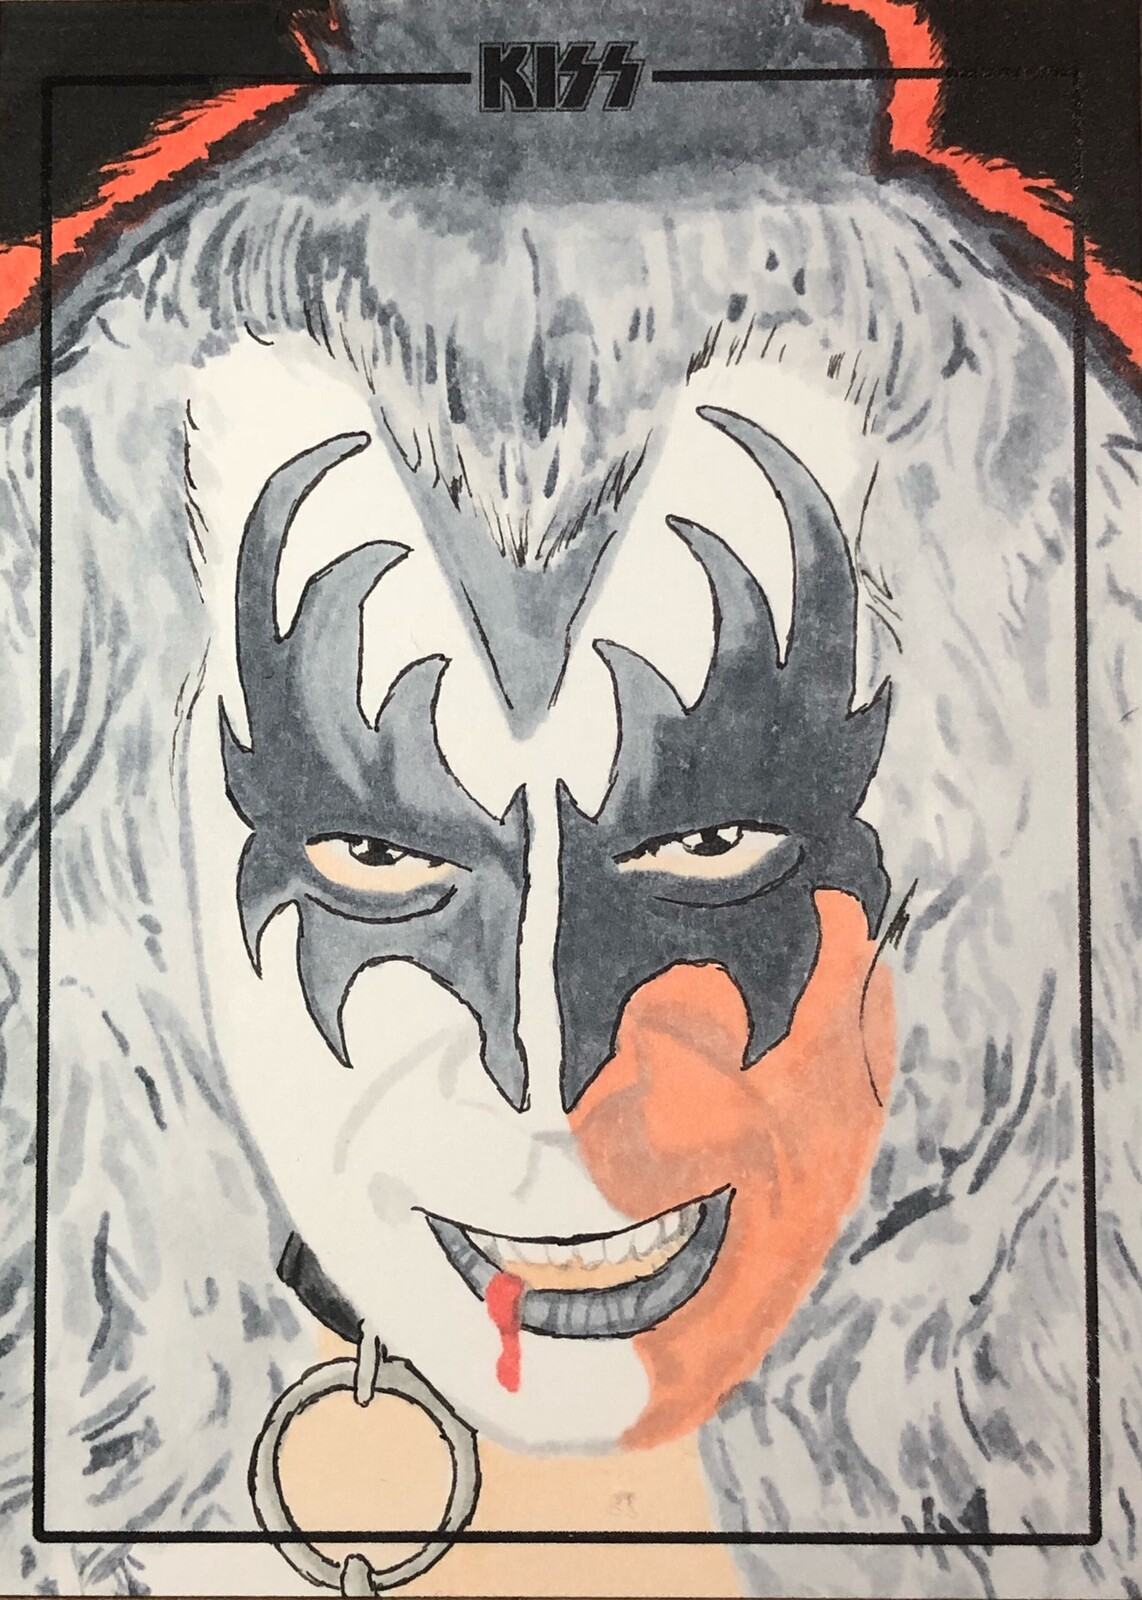 Dynamite Entertainment Officially Licensed KISS trading card art cards